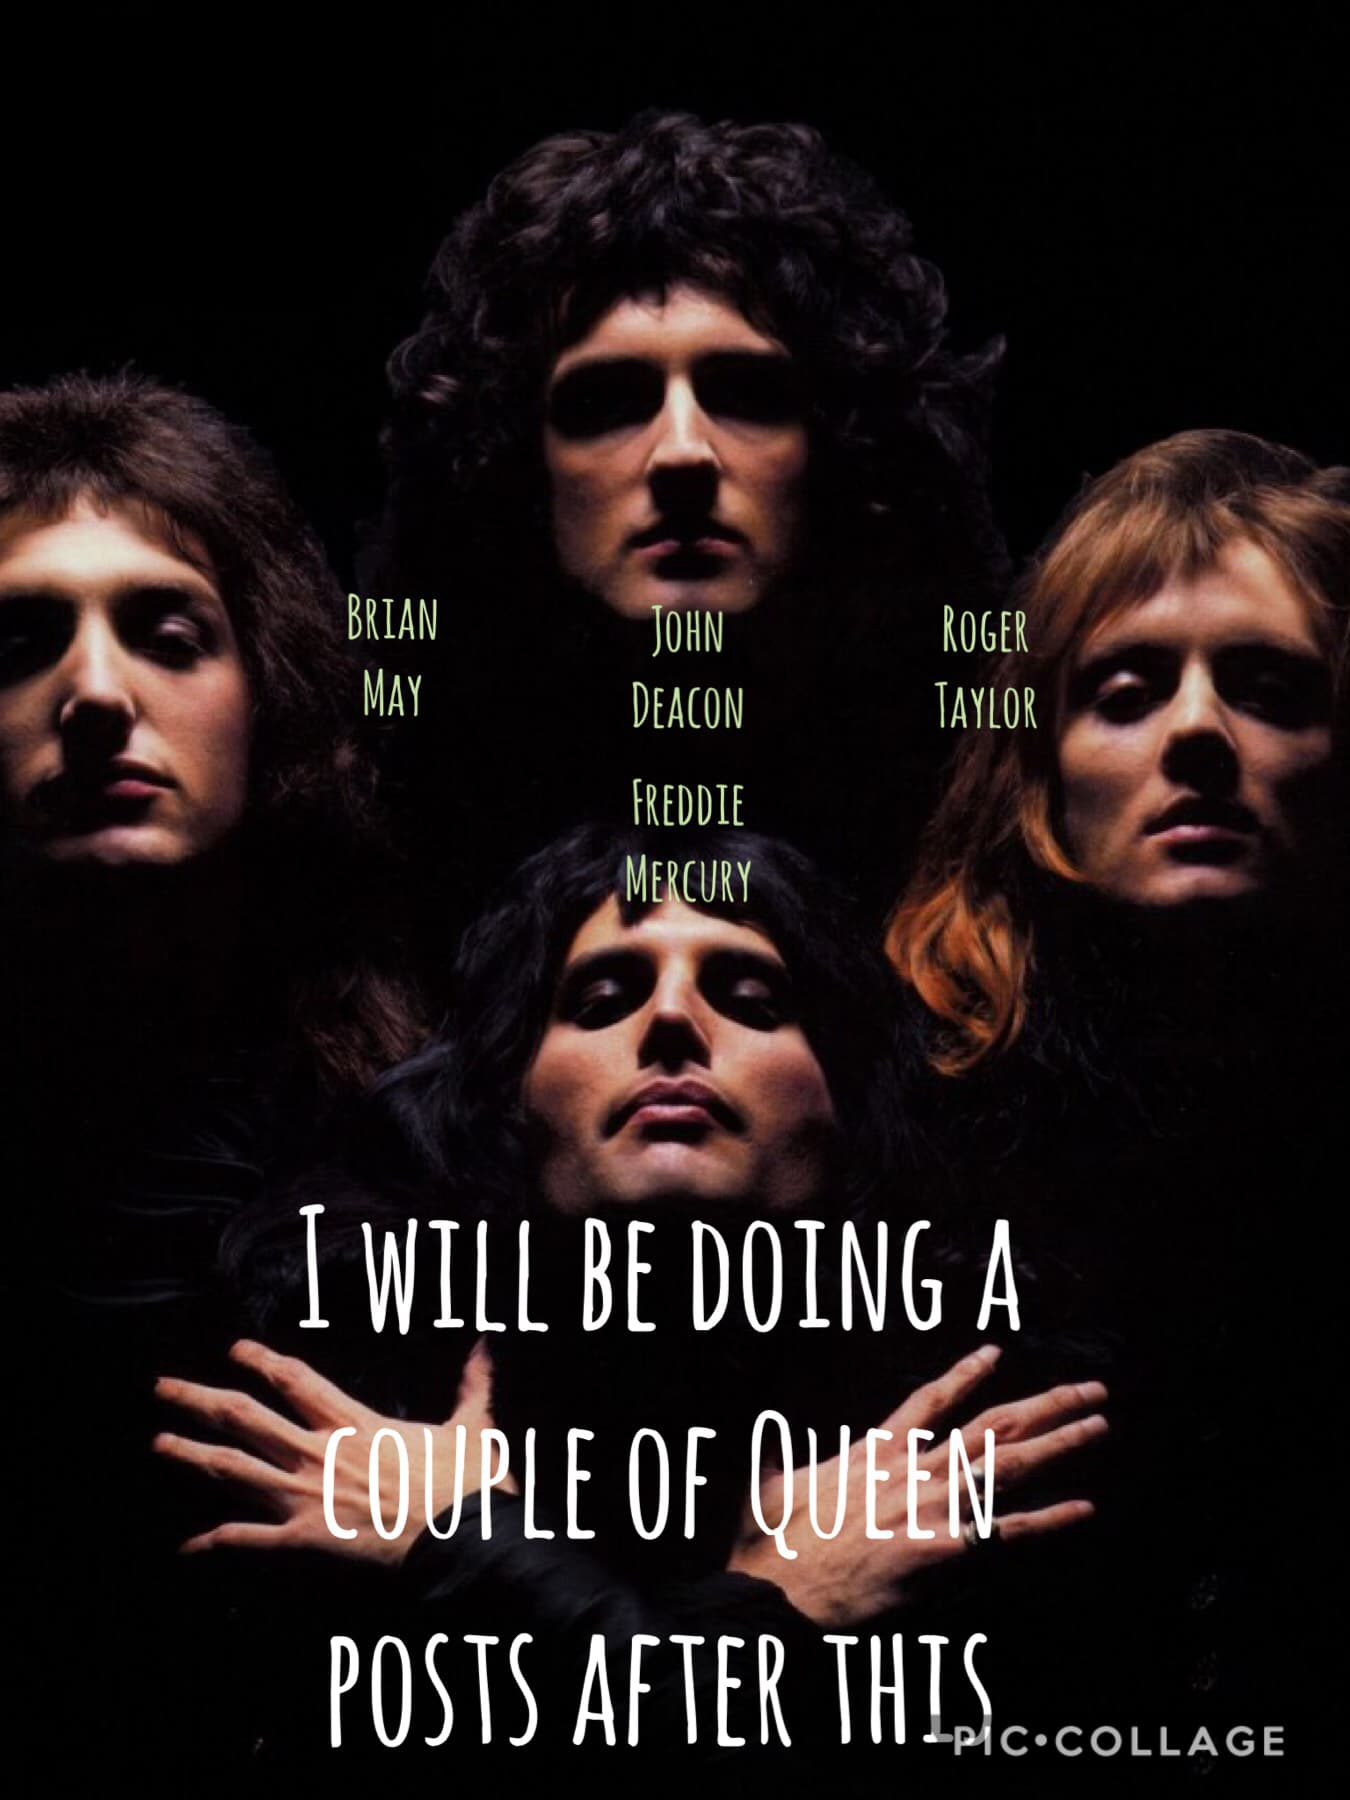 Who else loves queen! Comment if you have seen the movie Bohemian Rapsody